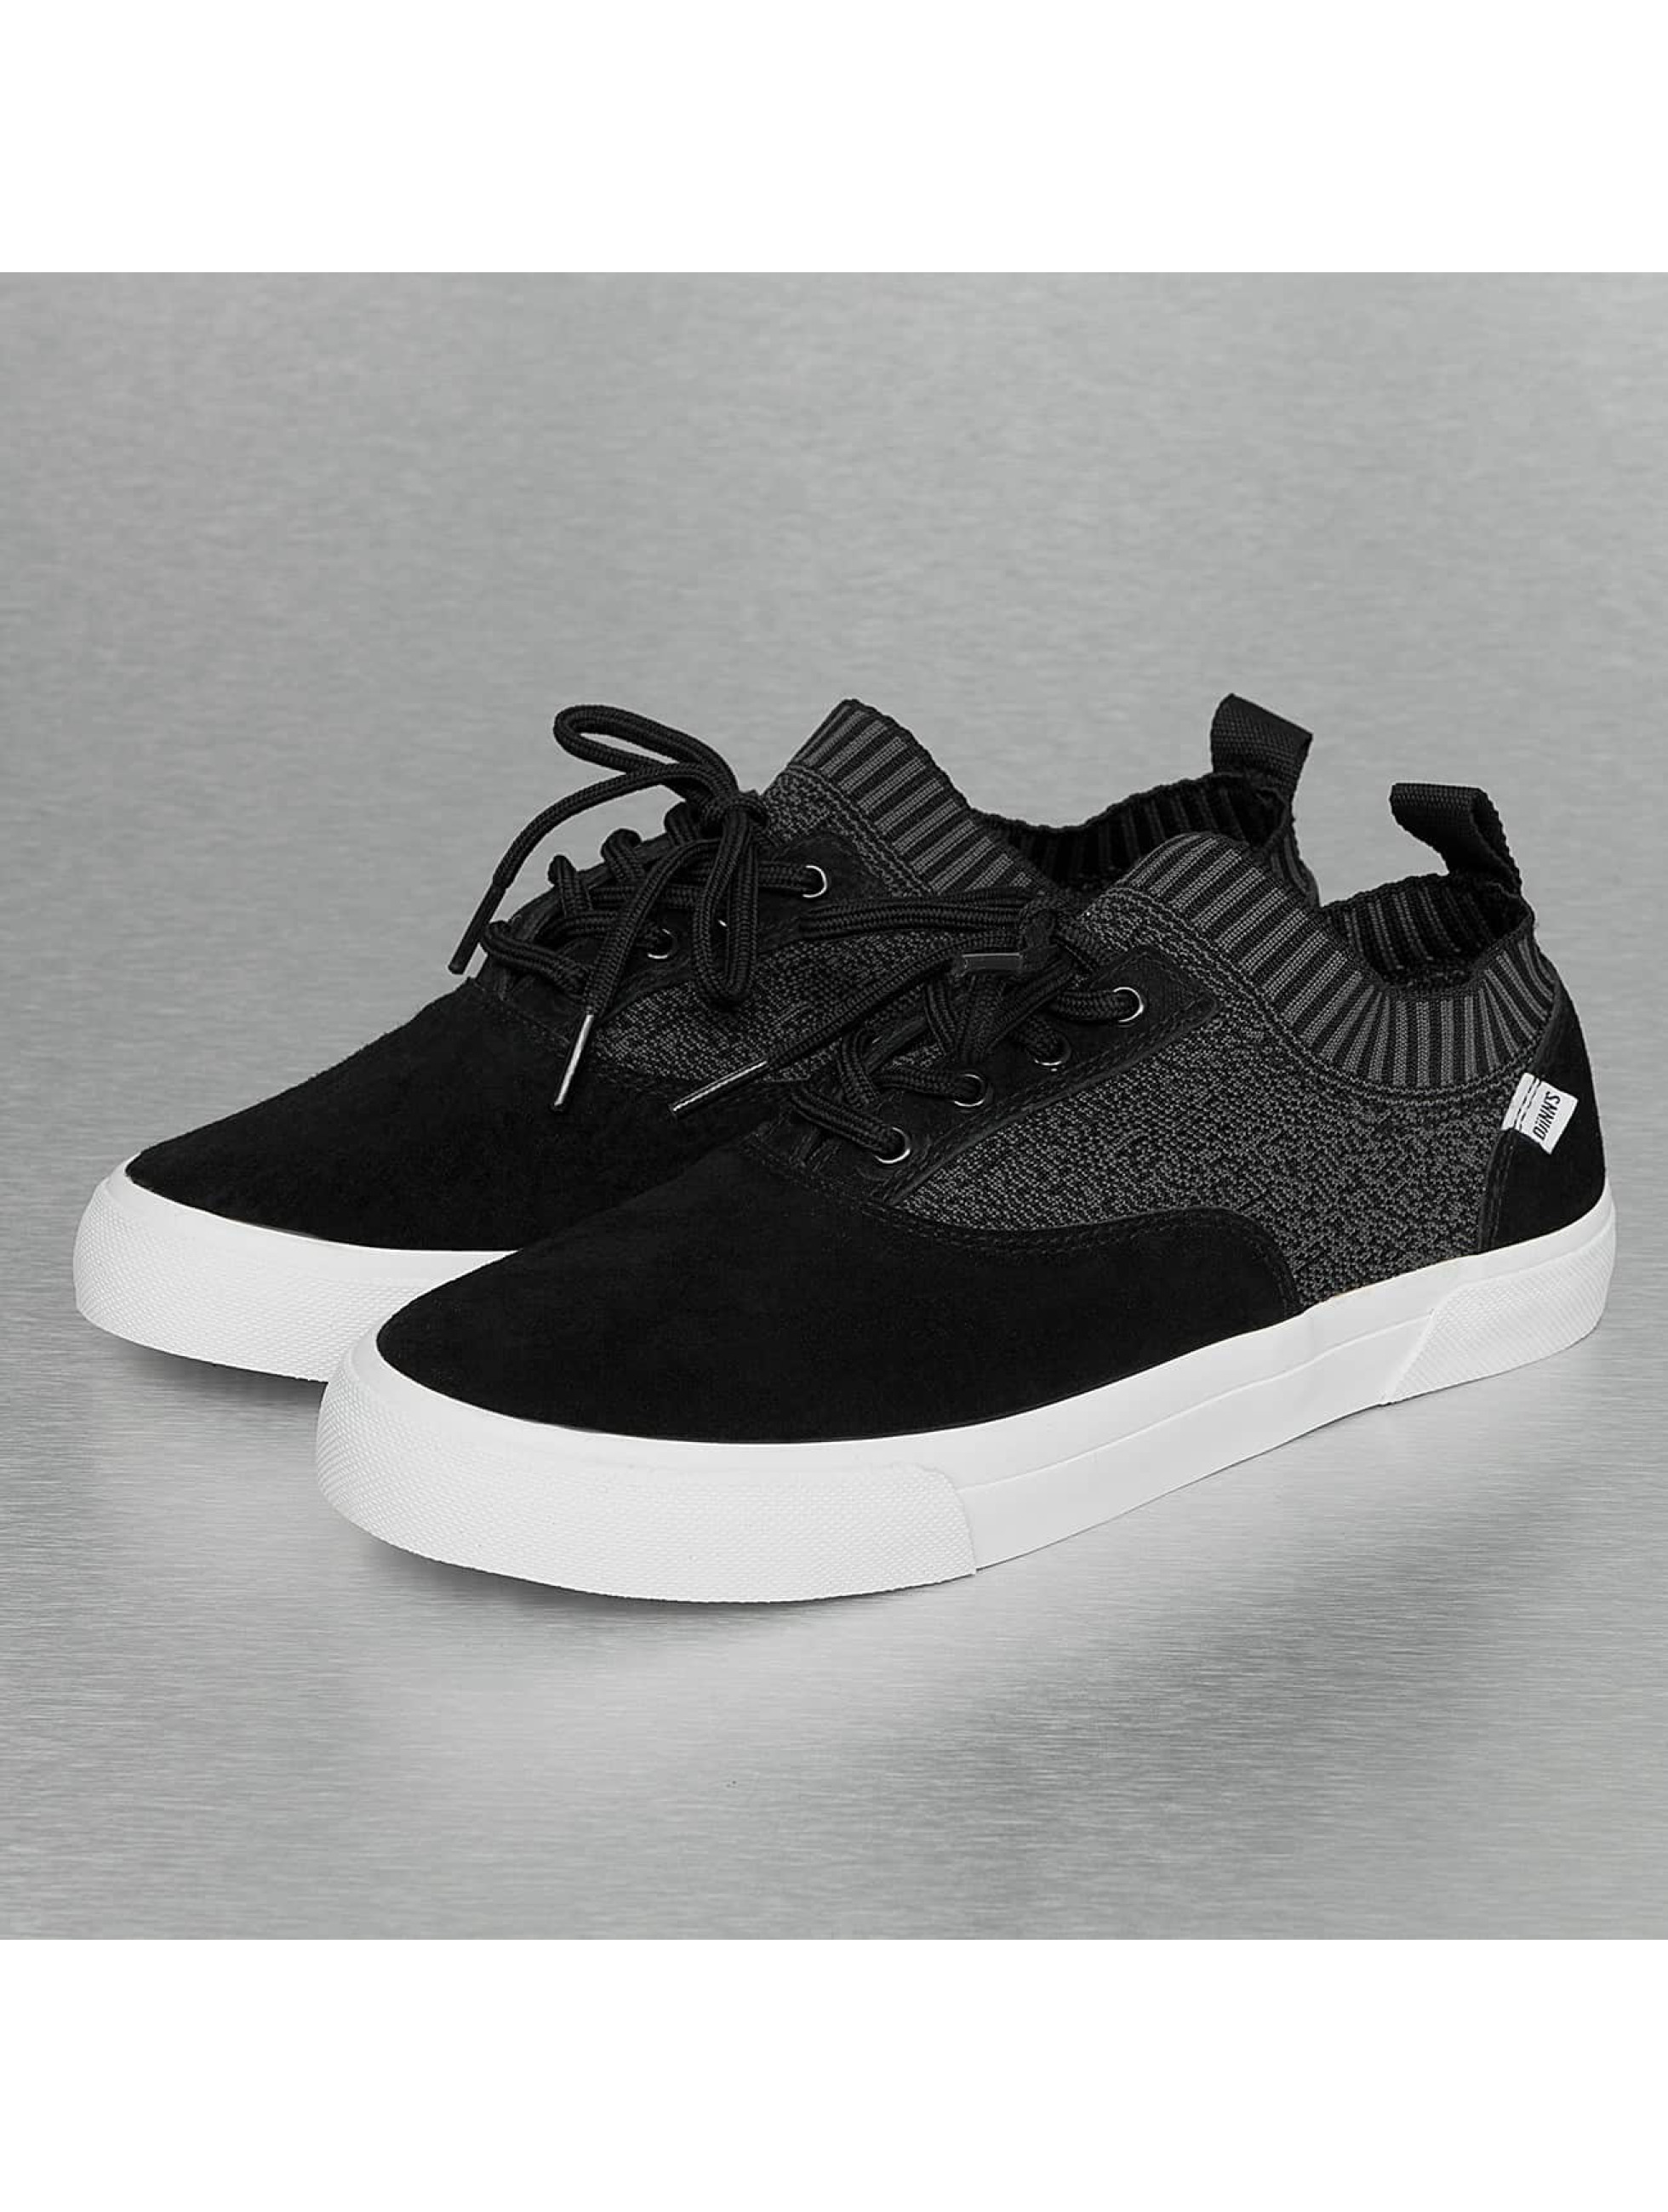 Sneaker Sub Age Soc Youname Knit in schwarz